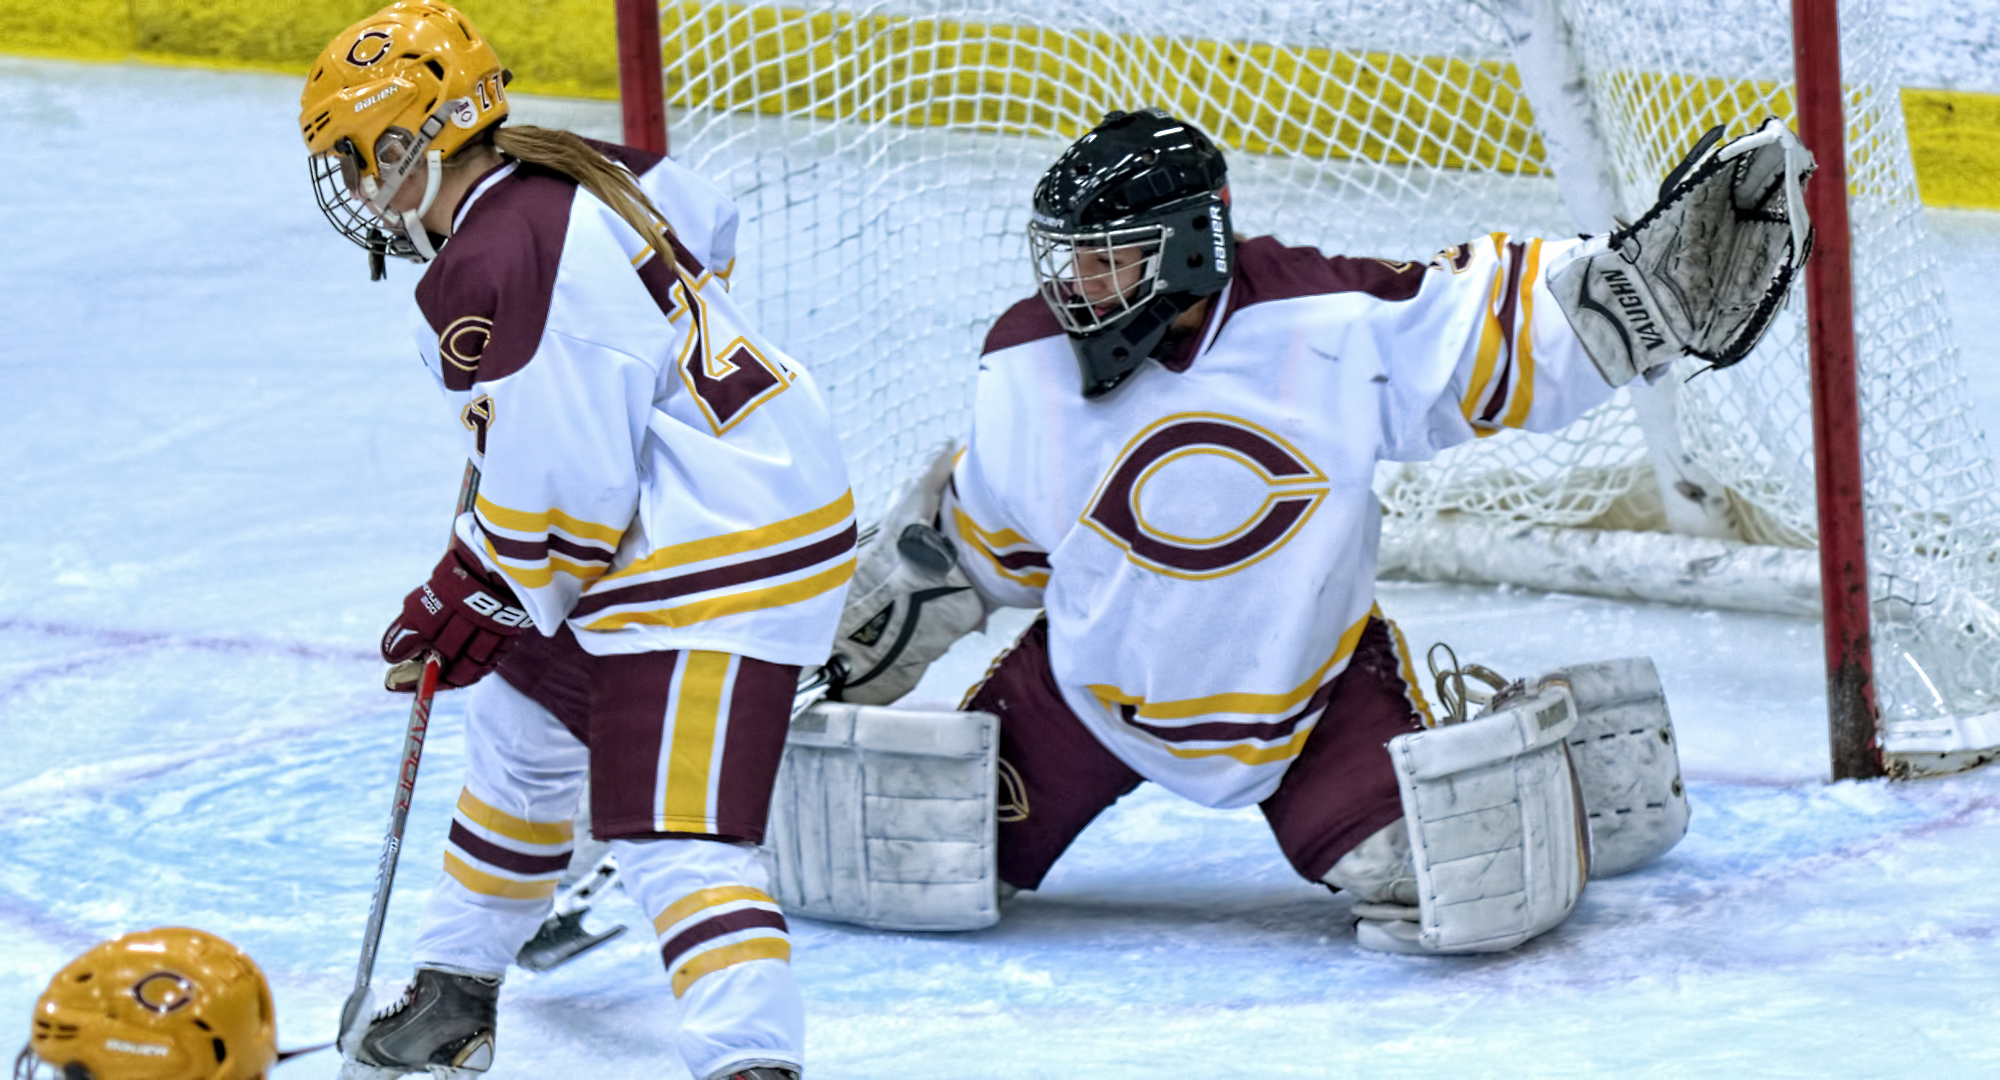 Brittany Boss made 23 saves in the Cobbers' 5-3 win over St. Catherine in the MIAC opener.